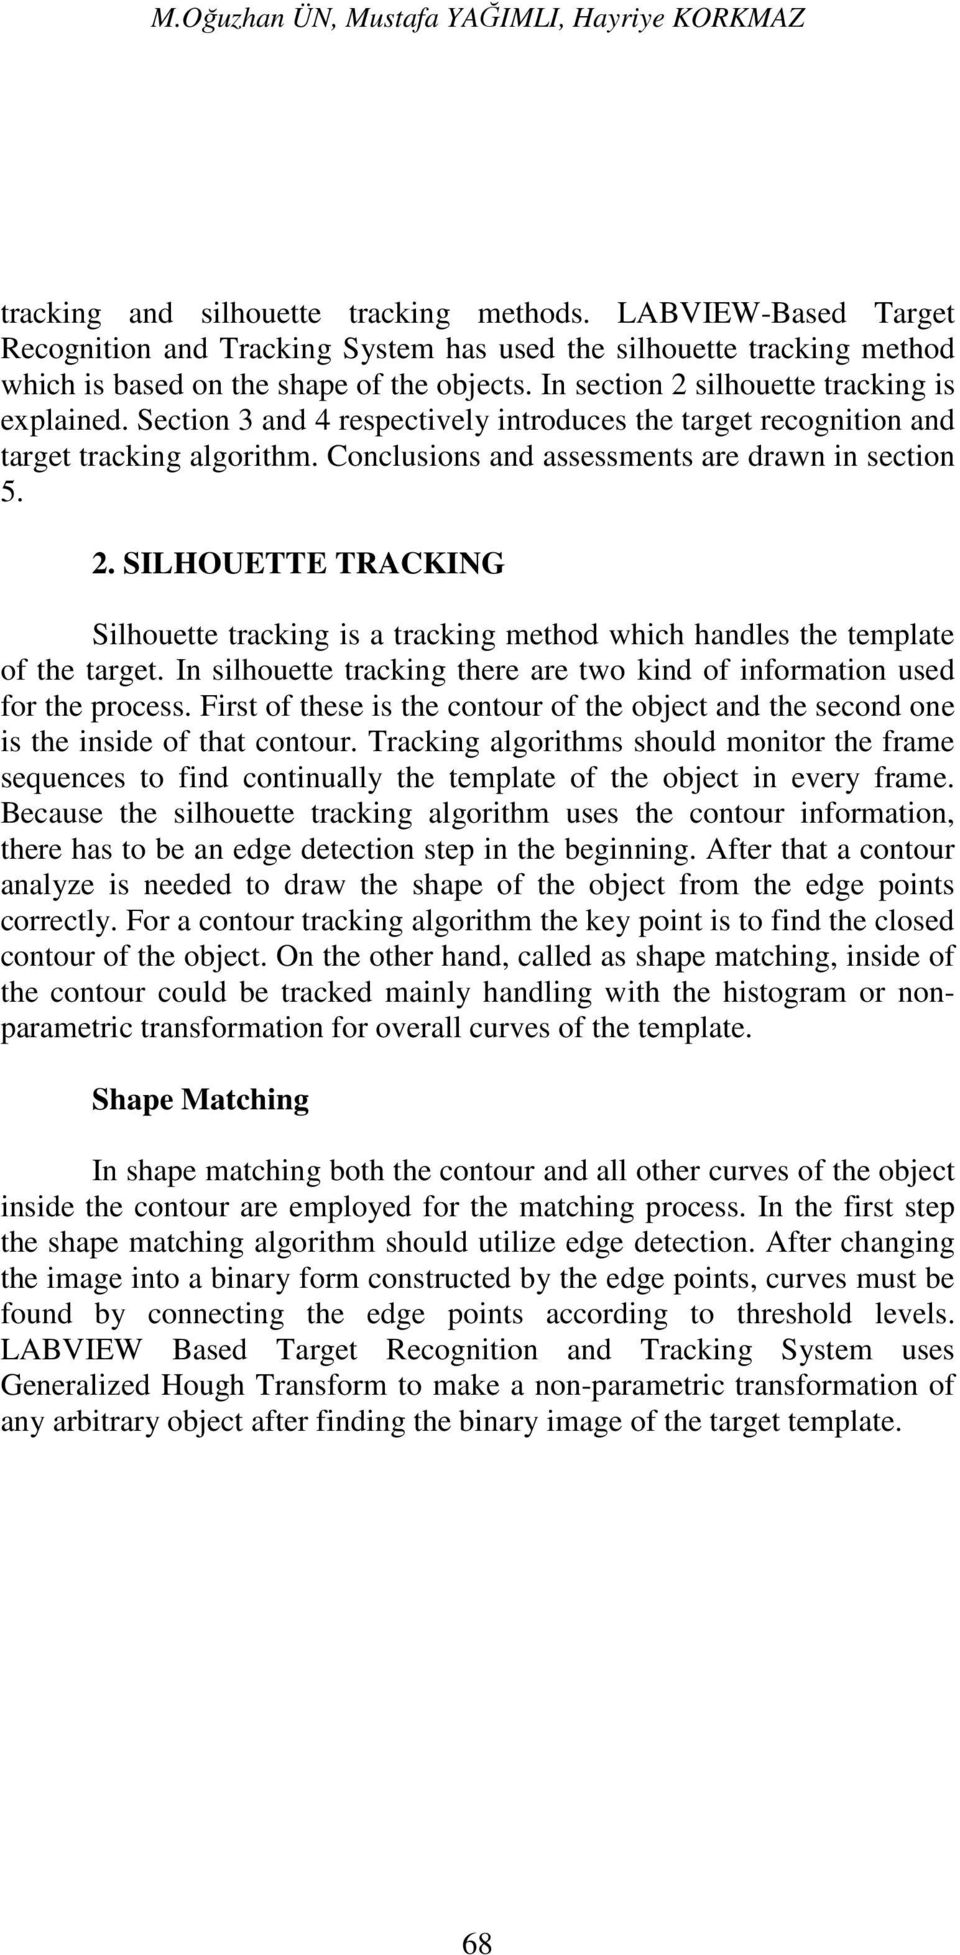 Section 3 and 4 respectively introduces the target recognition and target tracking algorithm. Conclusions and assessments are drawn in section 5. 2.